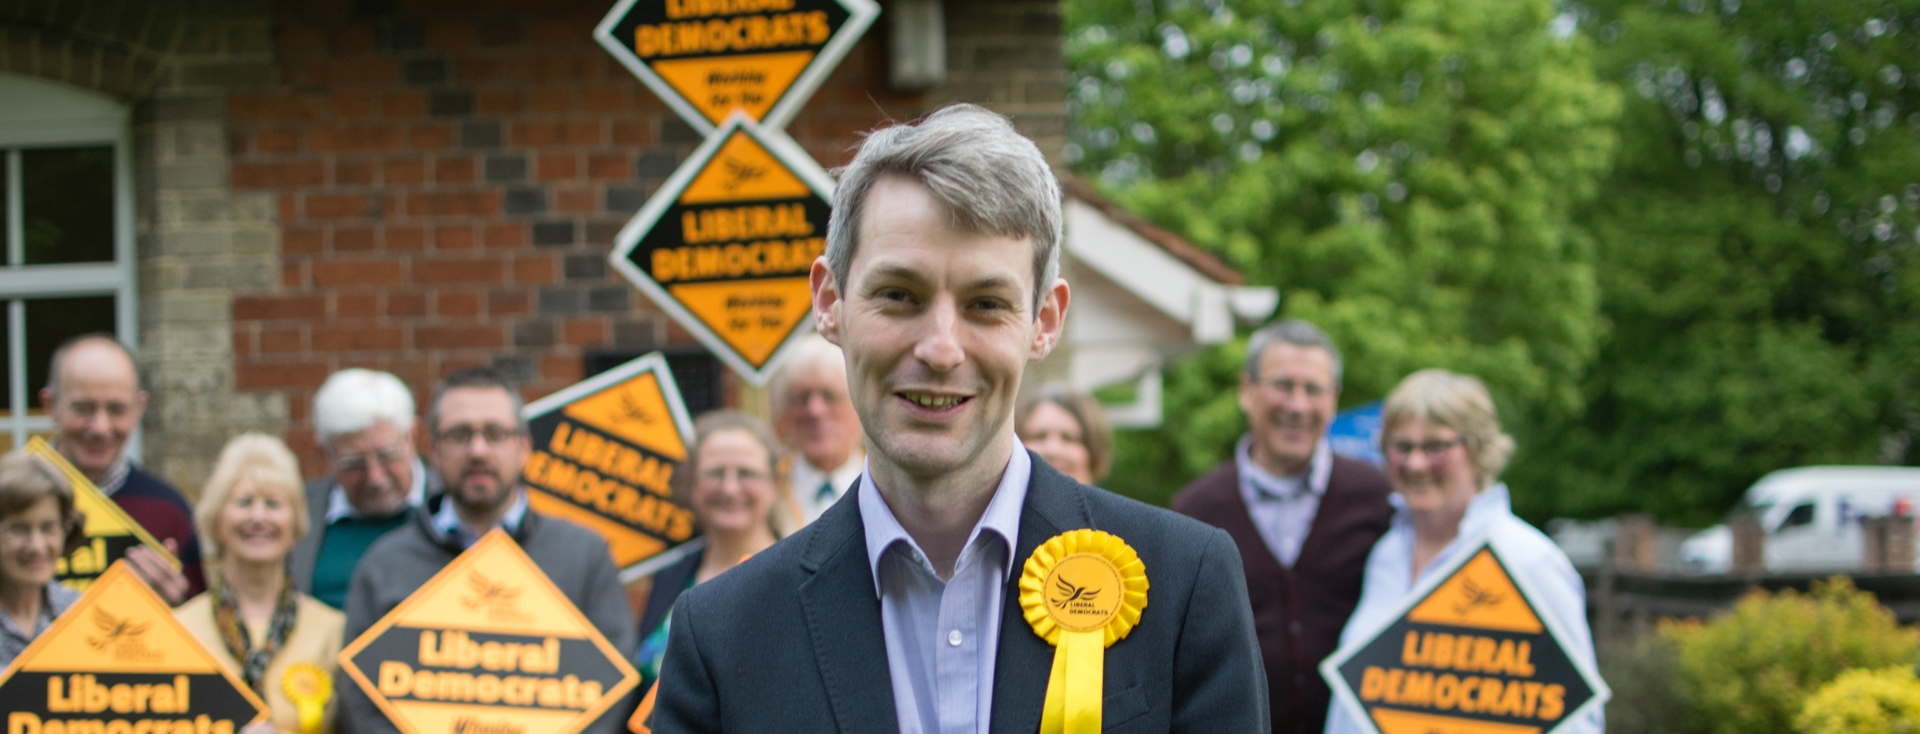 Will Forster GE2017 with supporters